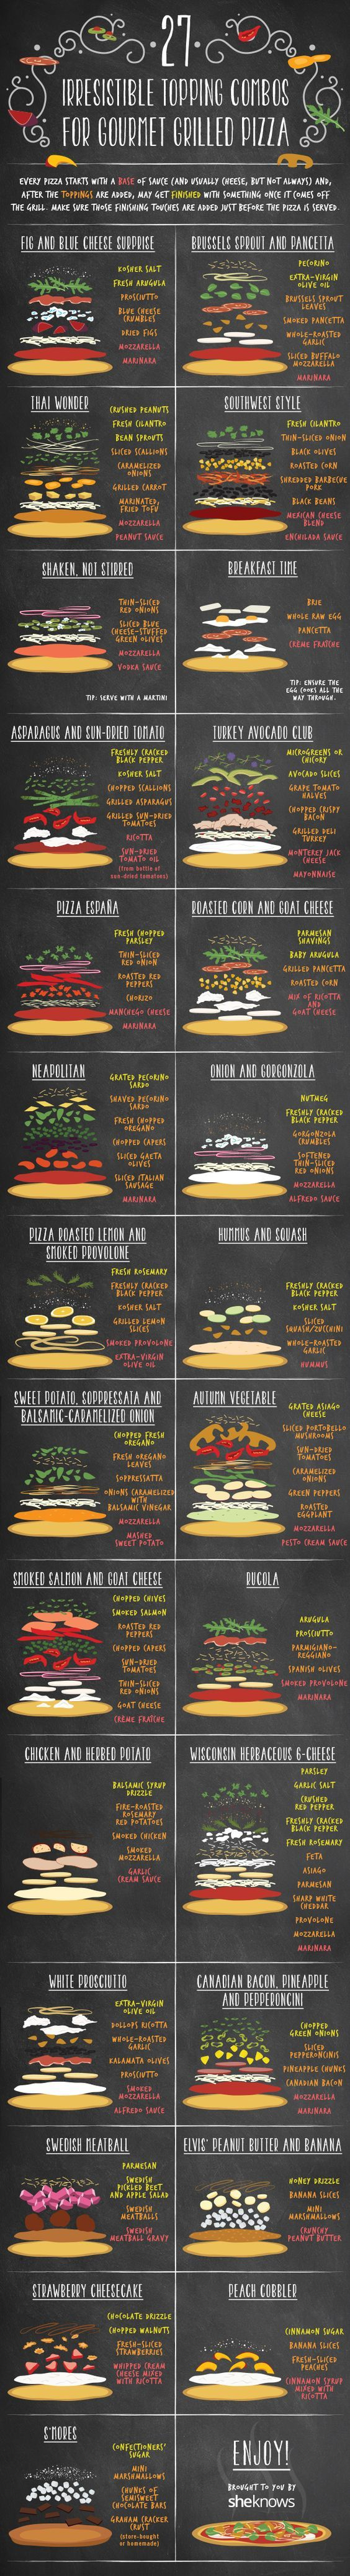 27 Irresistible Topping Combos For Gourmet Grilled Pizza